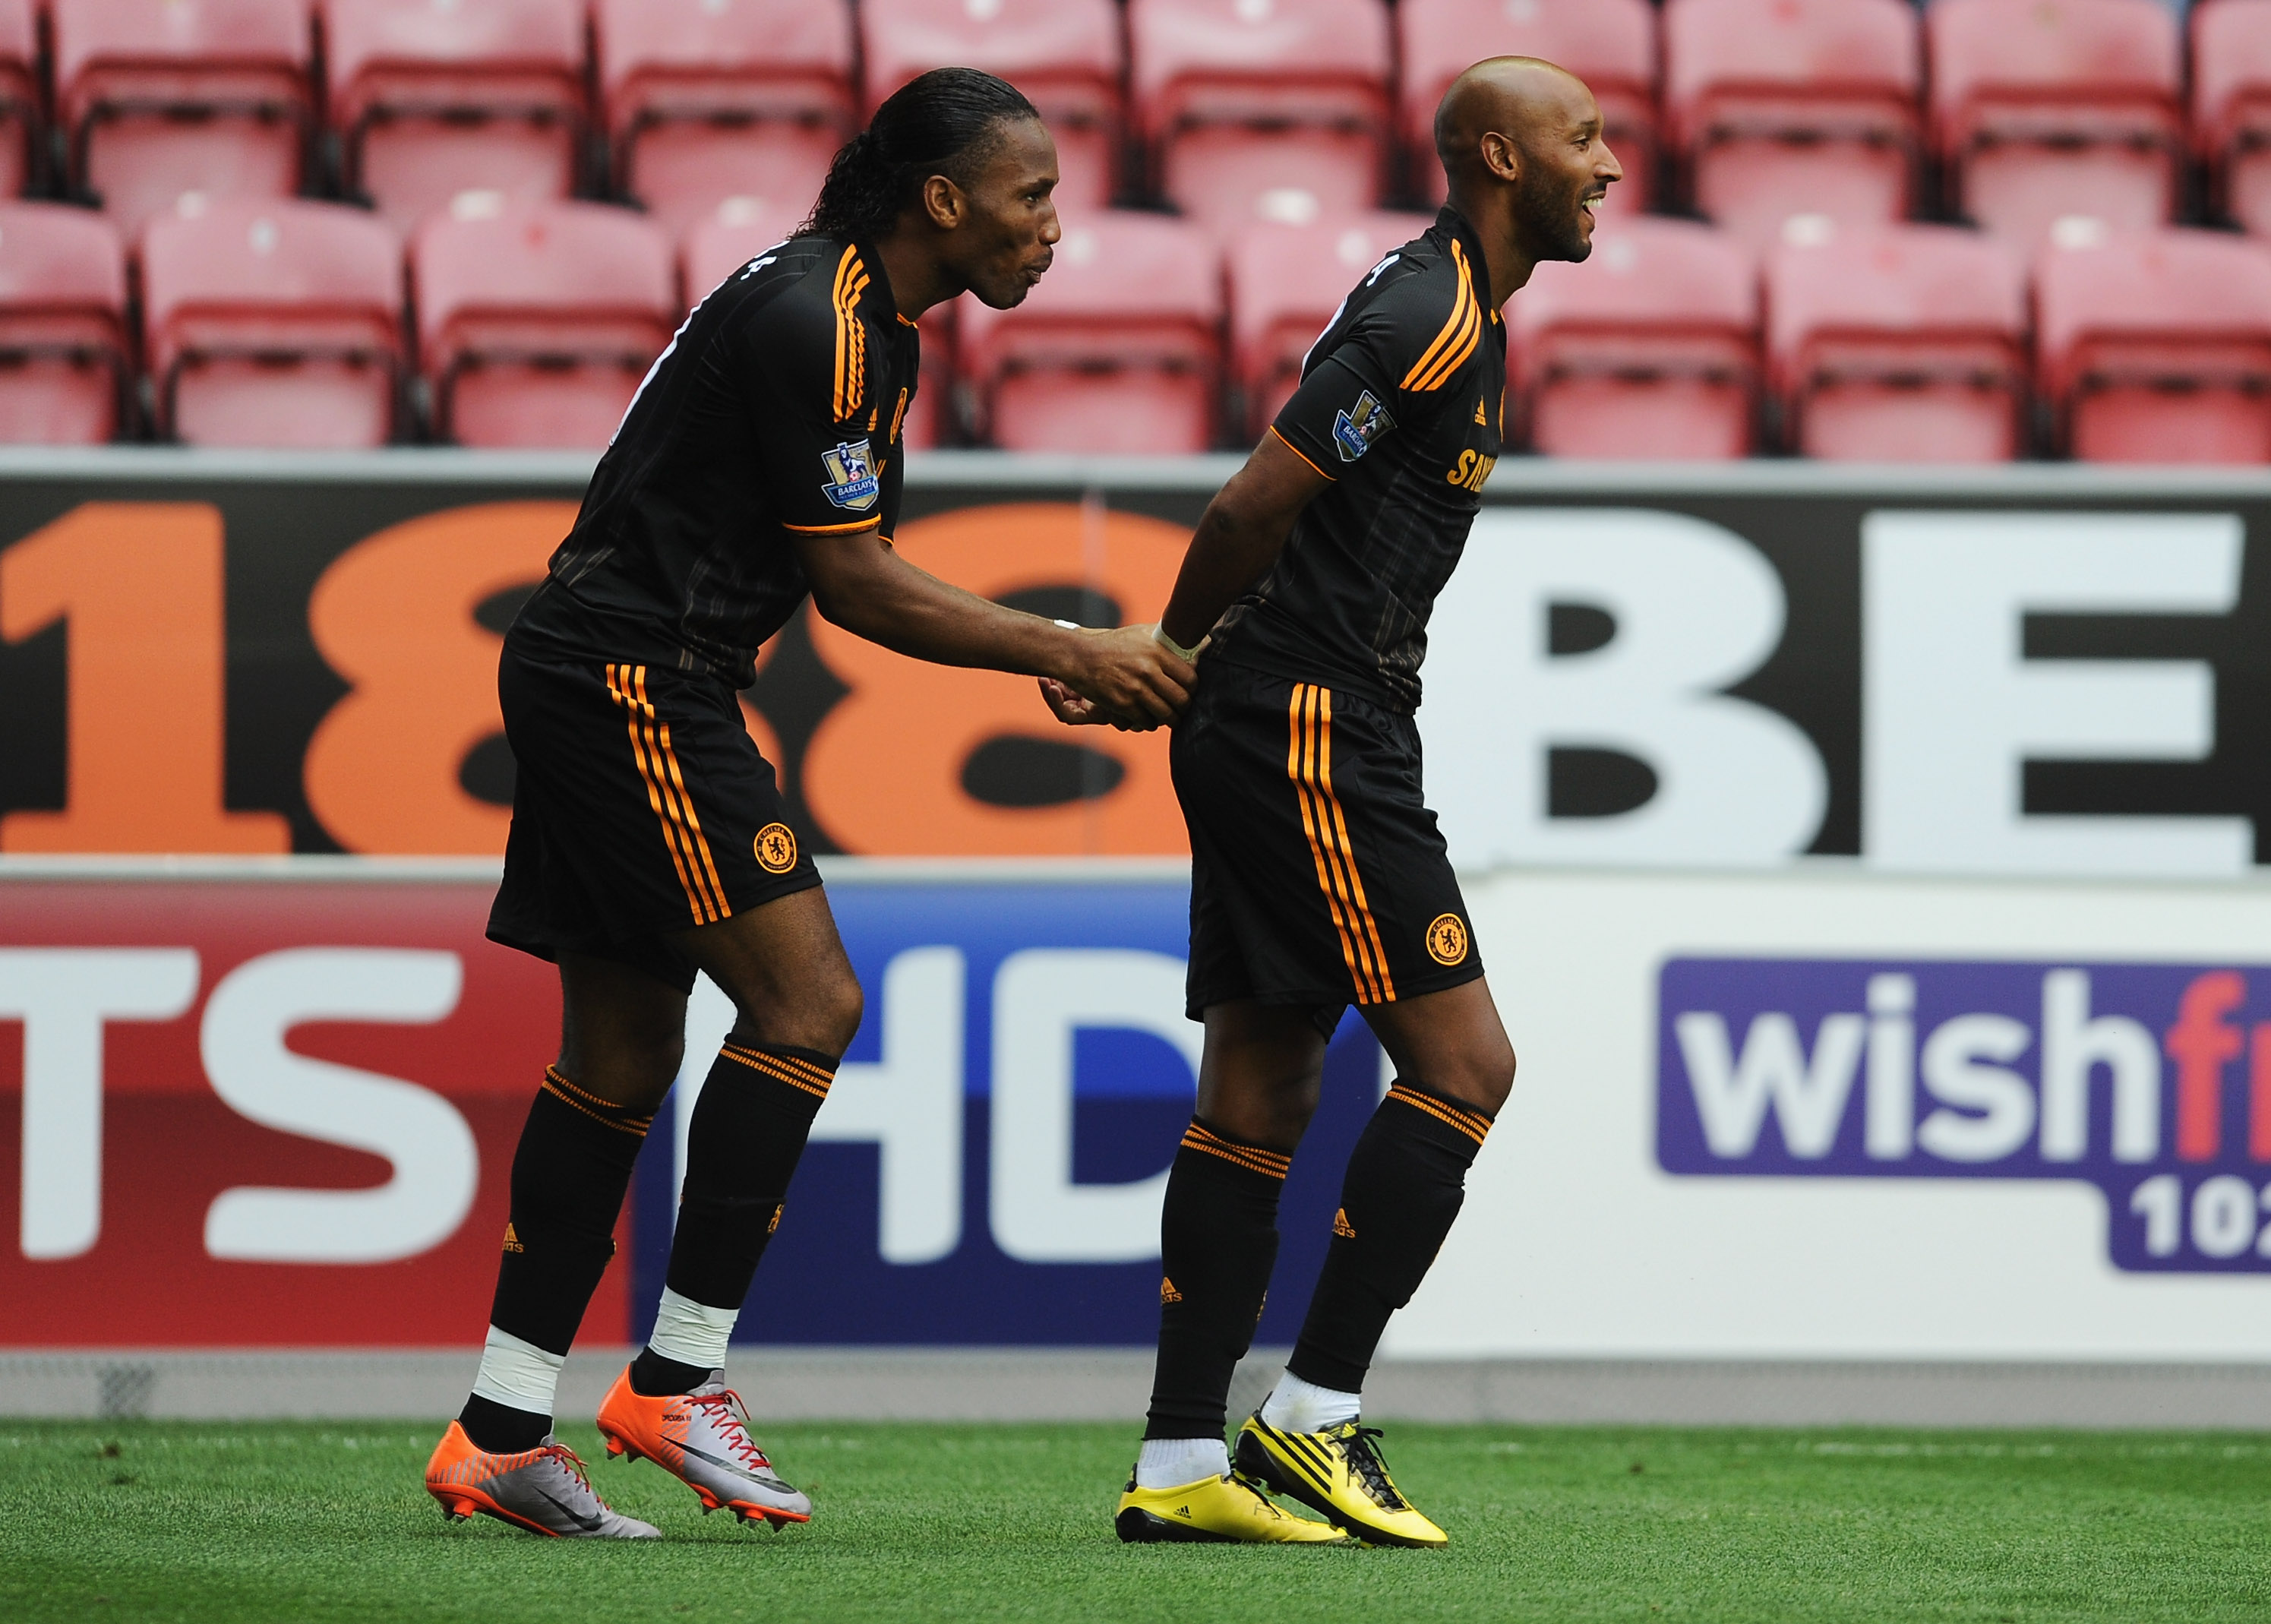 The Backhand Shake Performance By Drogba and Anelka